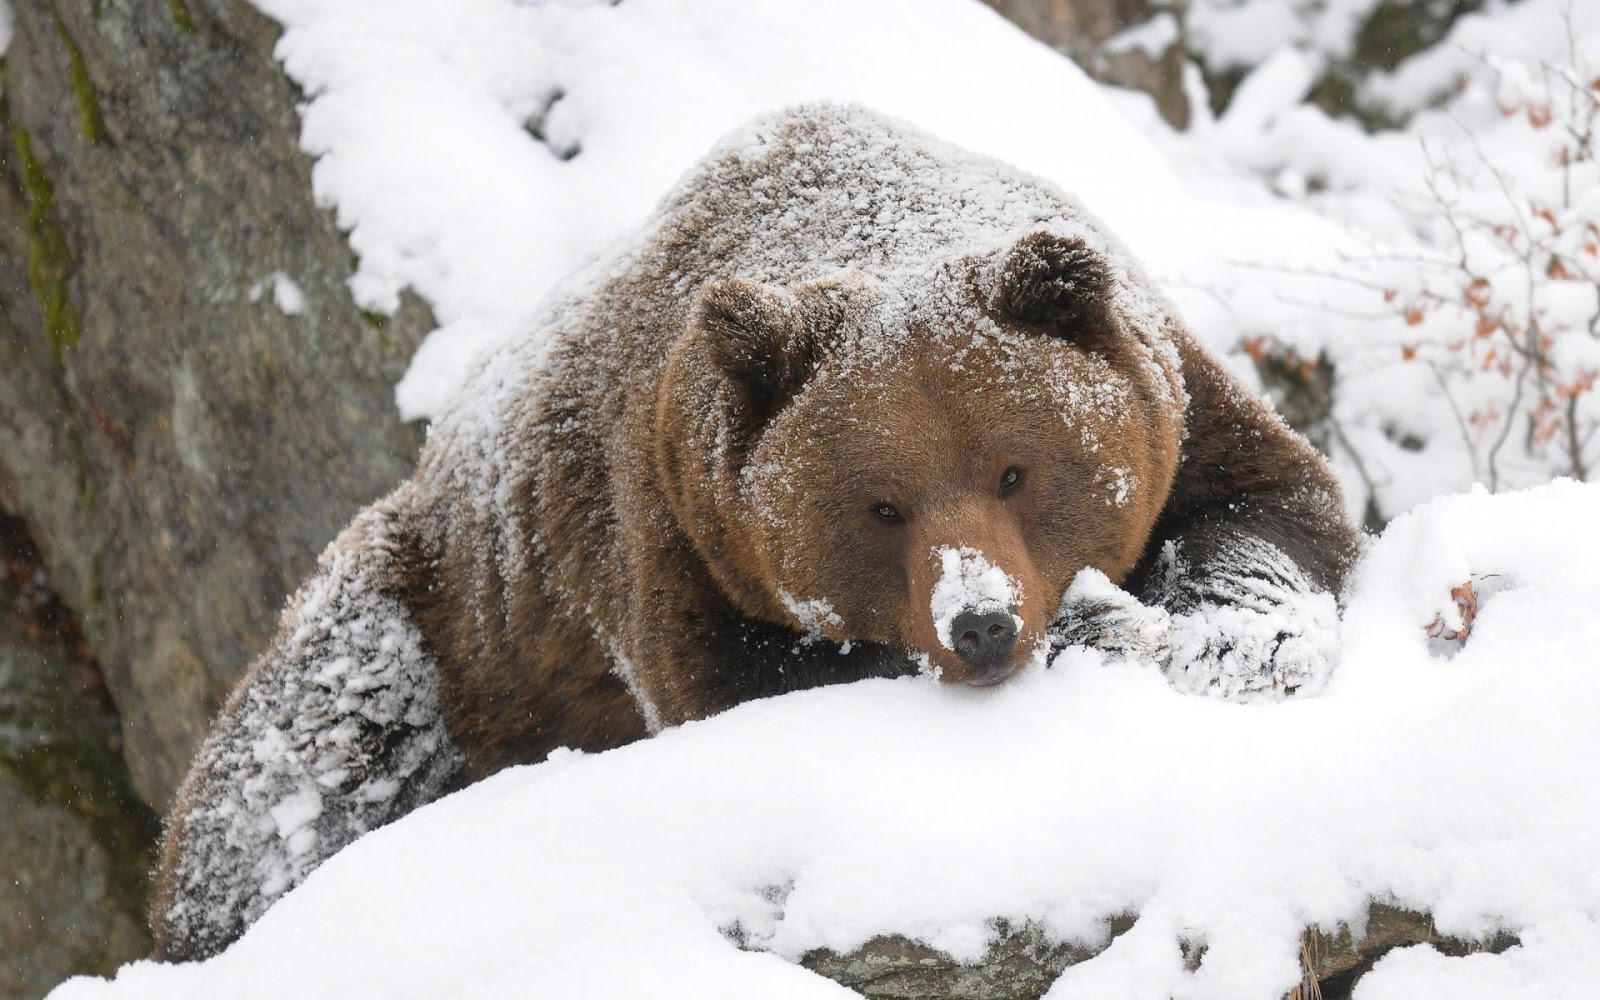 Wallpaper of Grizzly bear in the snow | HD Animals Wallpapers 702